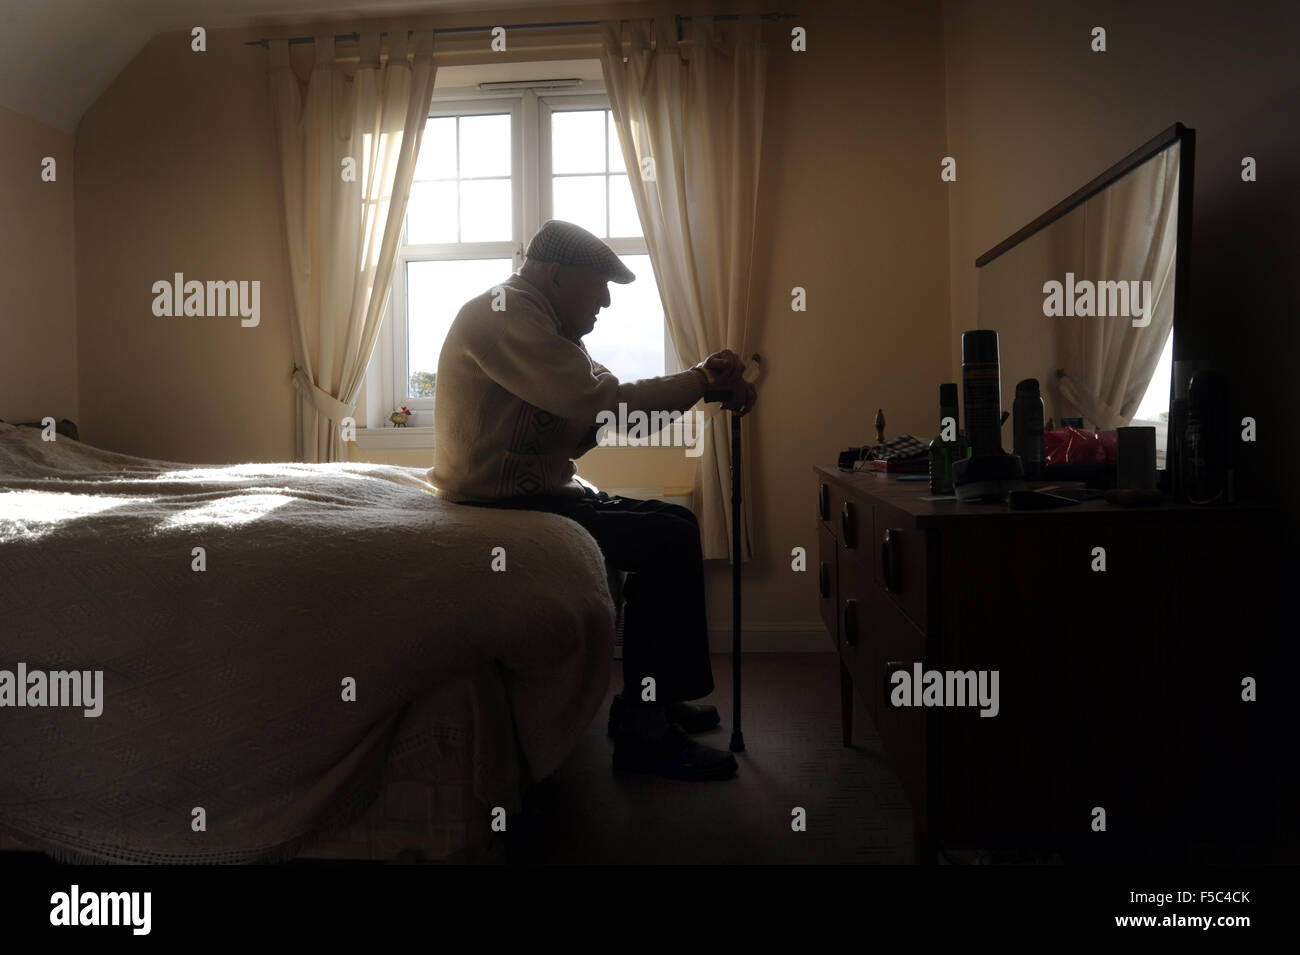 ELDERLY MAN WITH WALKING STICK RE OLD AGE LONELINESS PENSIONERS RETIREMENT CARE WORKERS HOME PEOPLES DEPRESSION - Stock Image